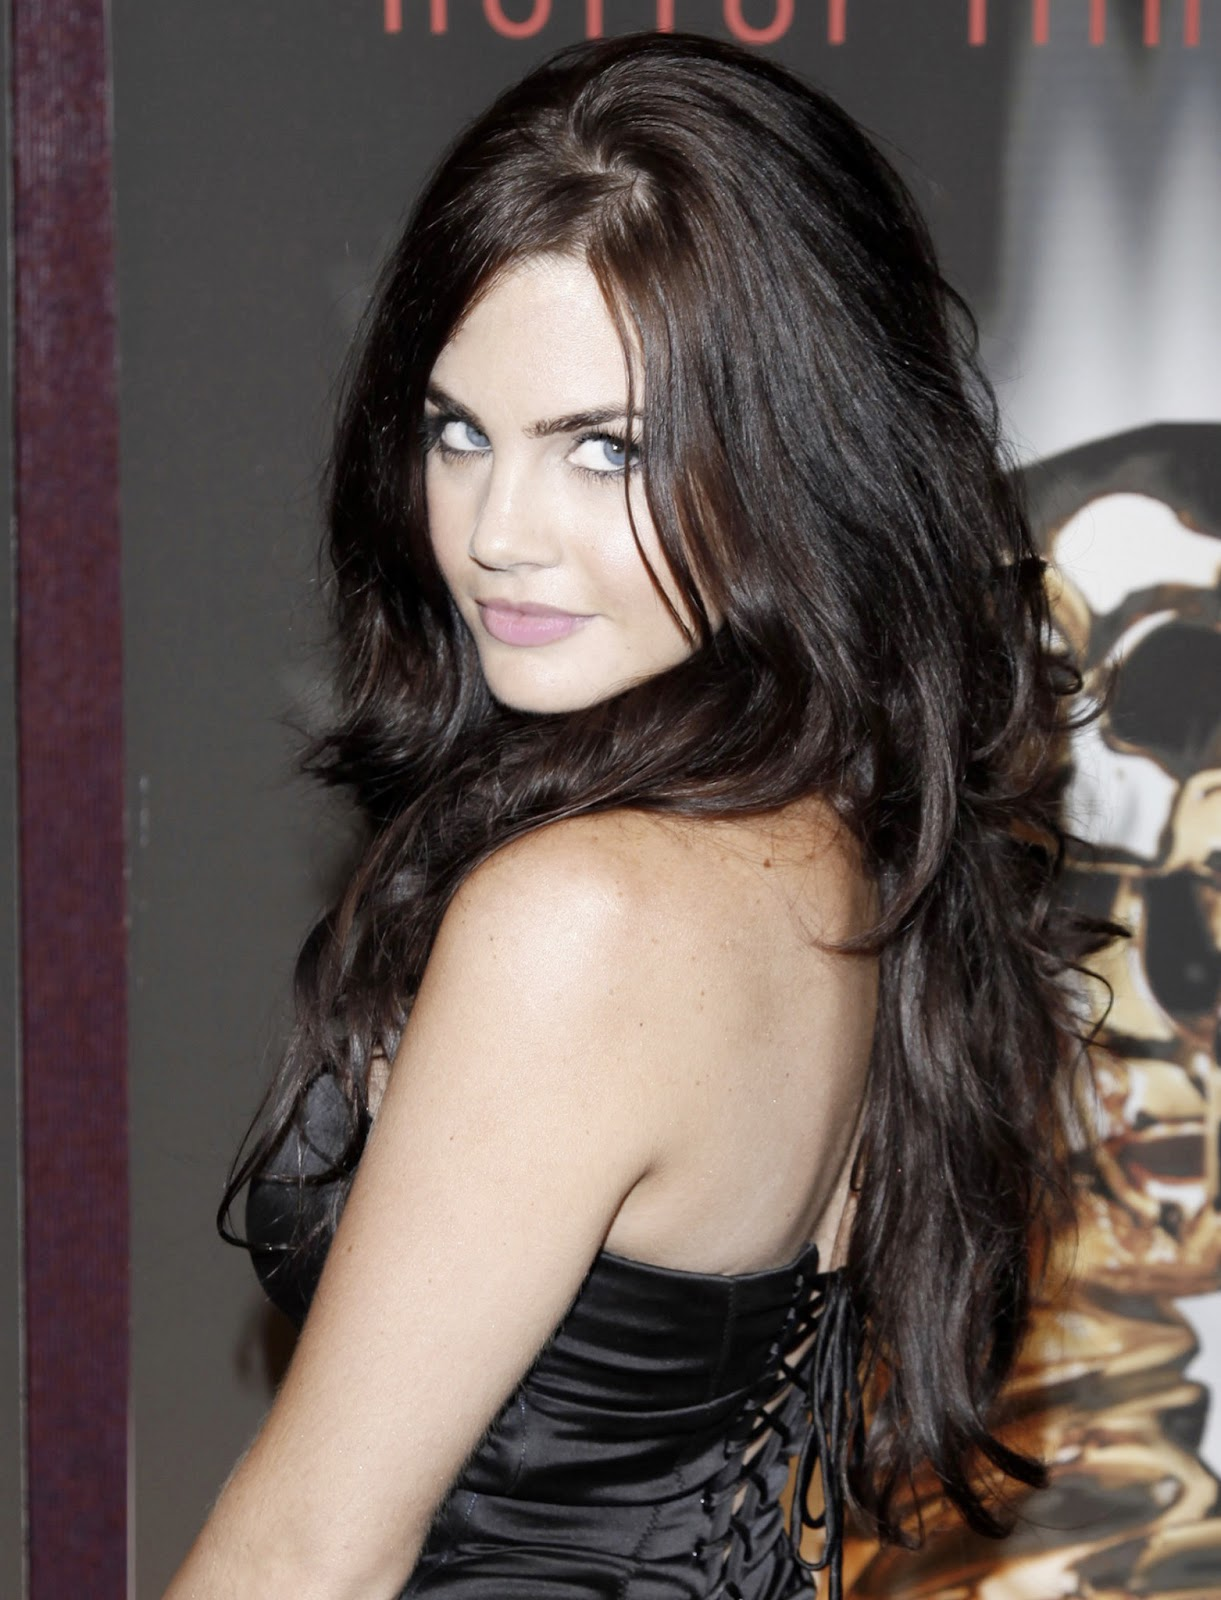 jillian murray photos